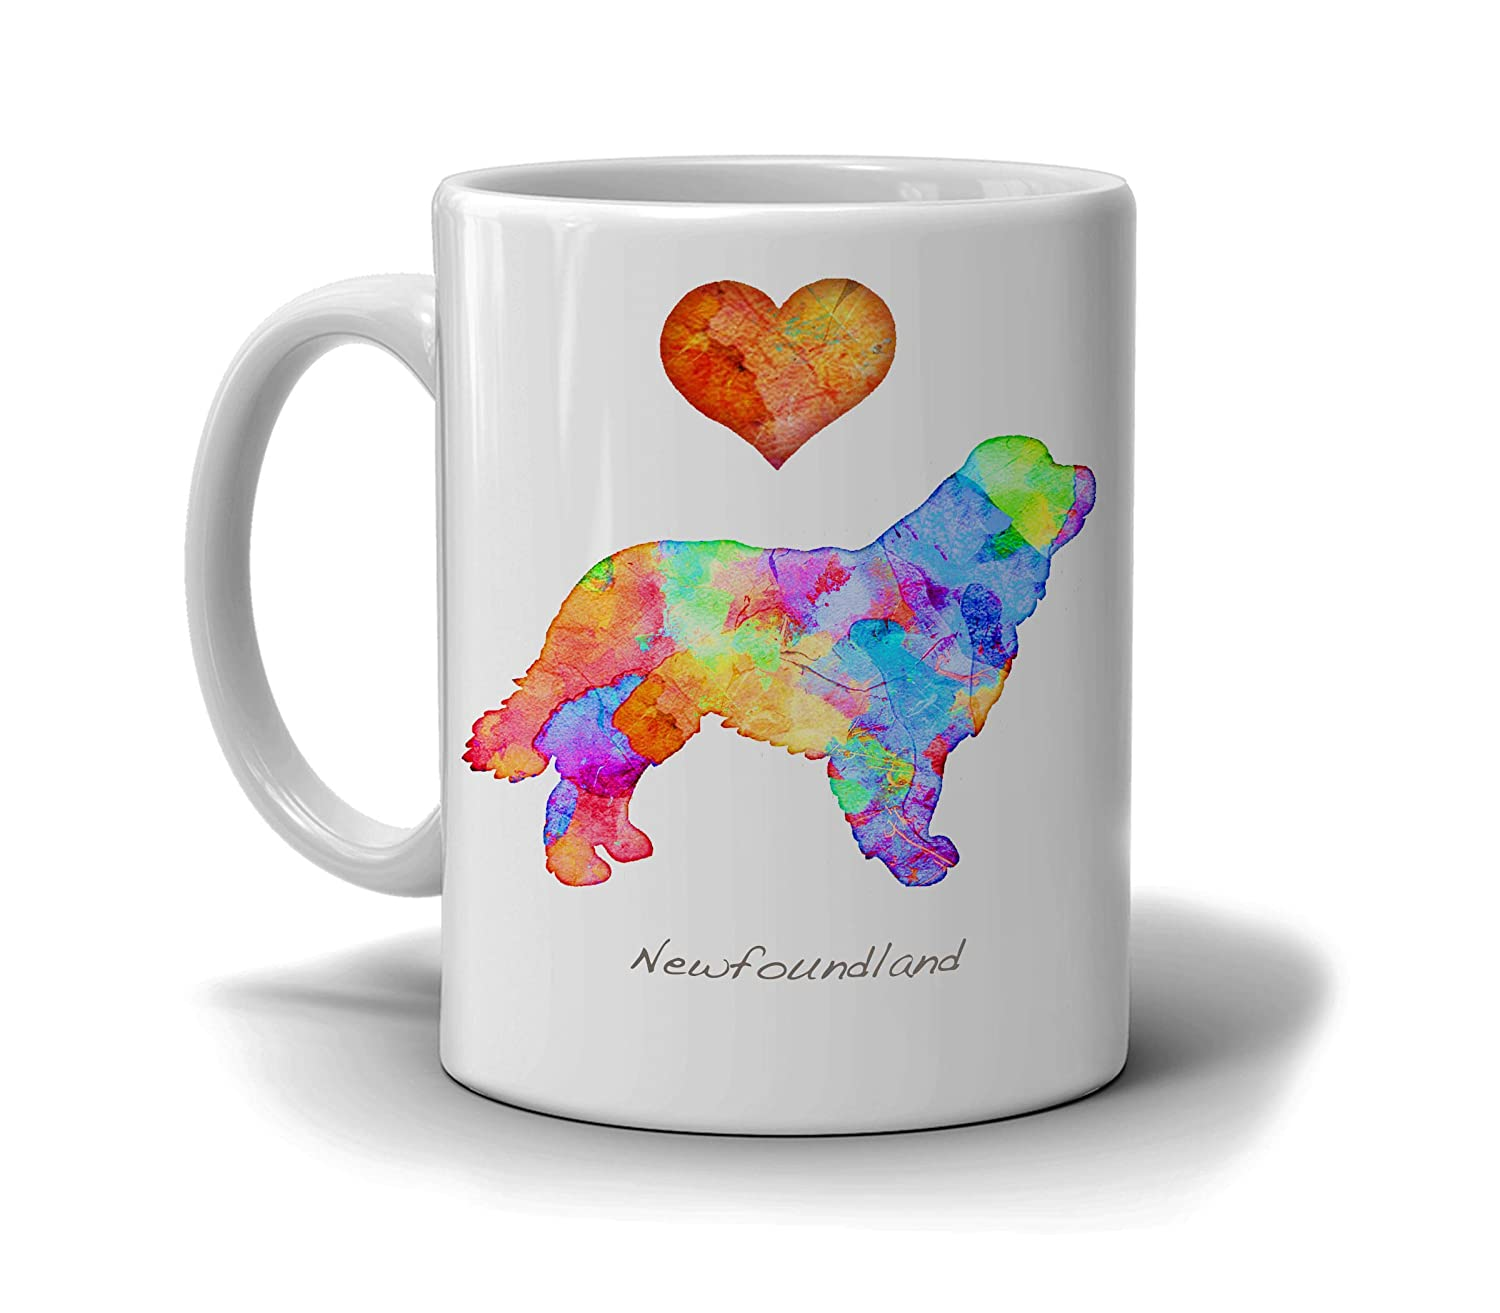 Newfoundland Dog Breed Mug by Personalize Max 65% OFF Dan with N At the price Morris